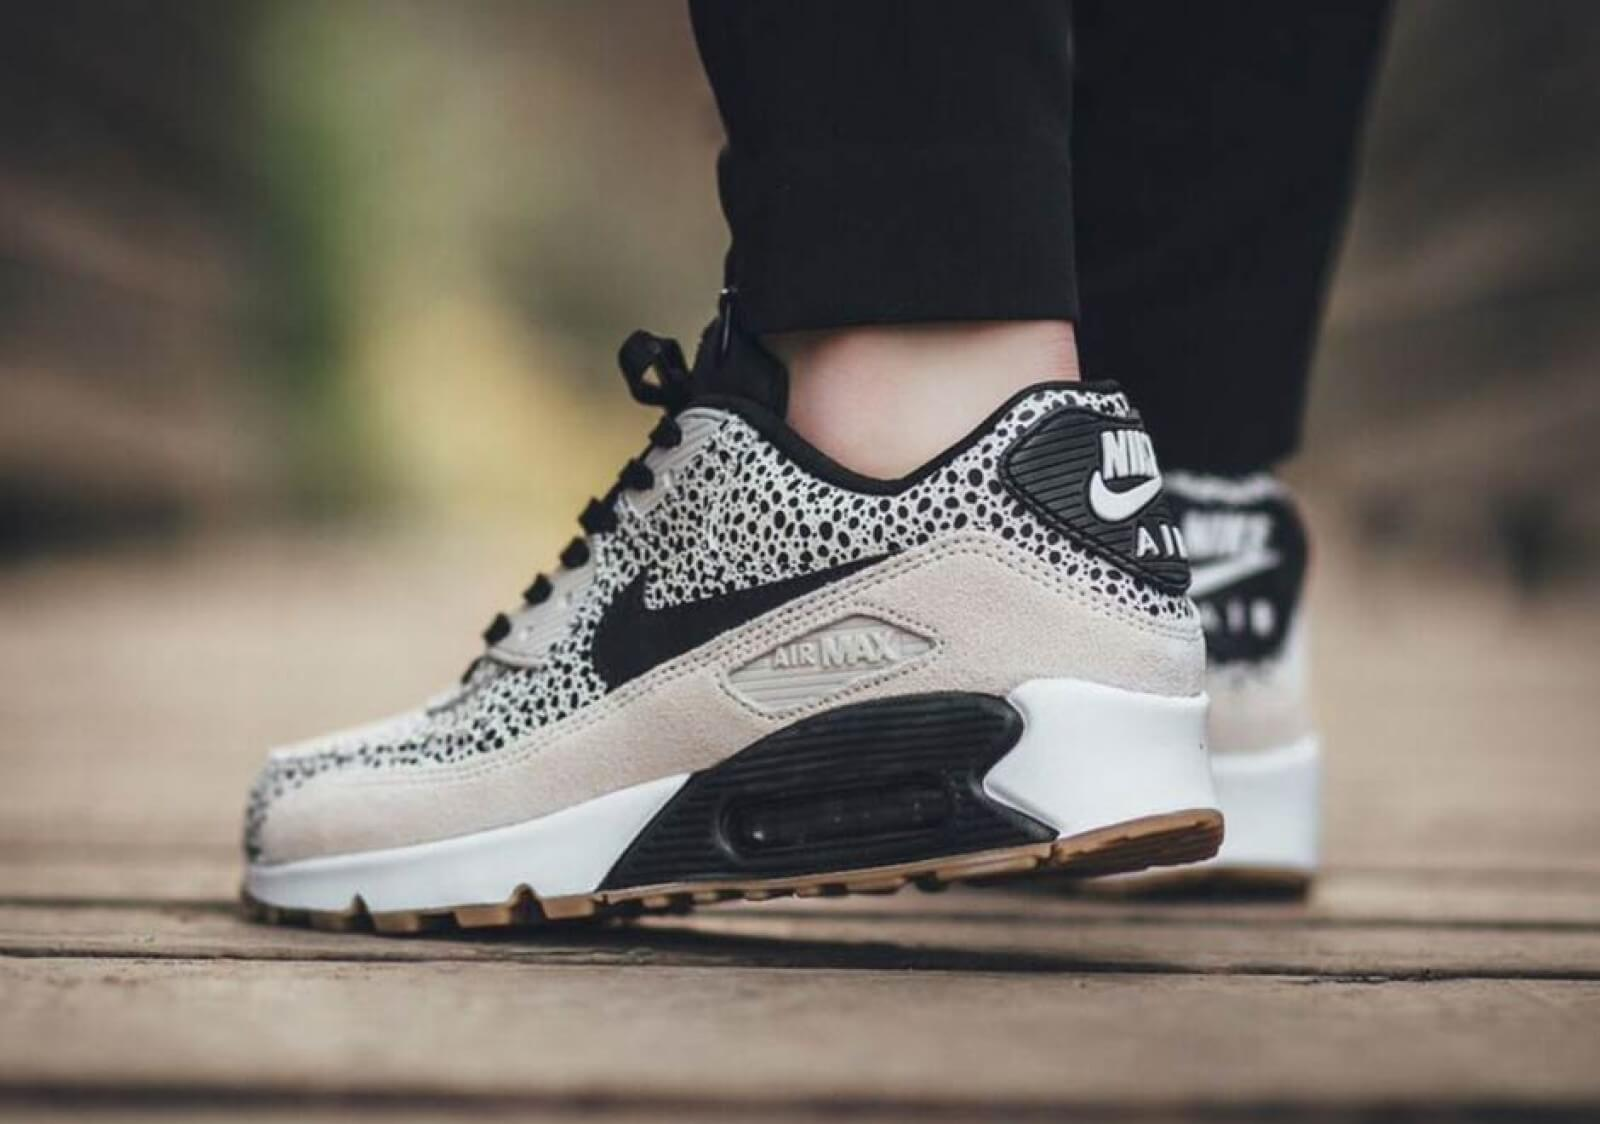 Nike Wmns Air Max 90 PRM White Black-Gum Light Brown - 443817-102 29b443732611